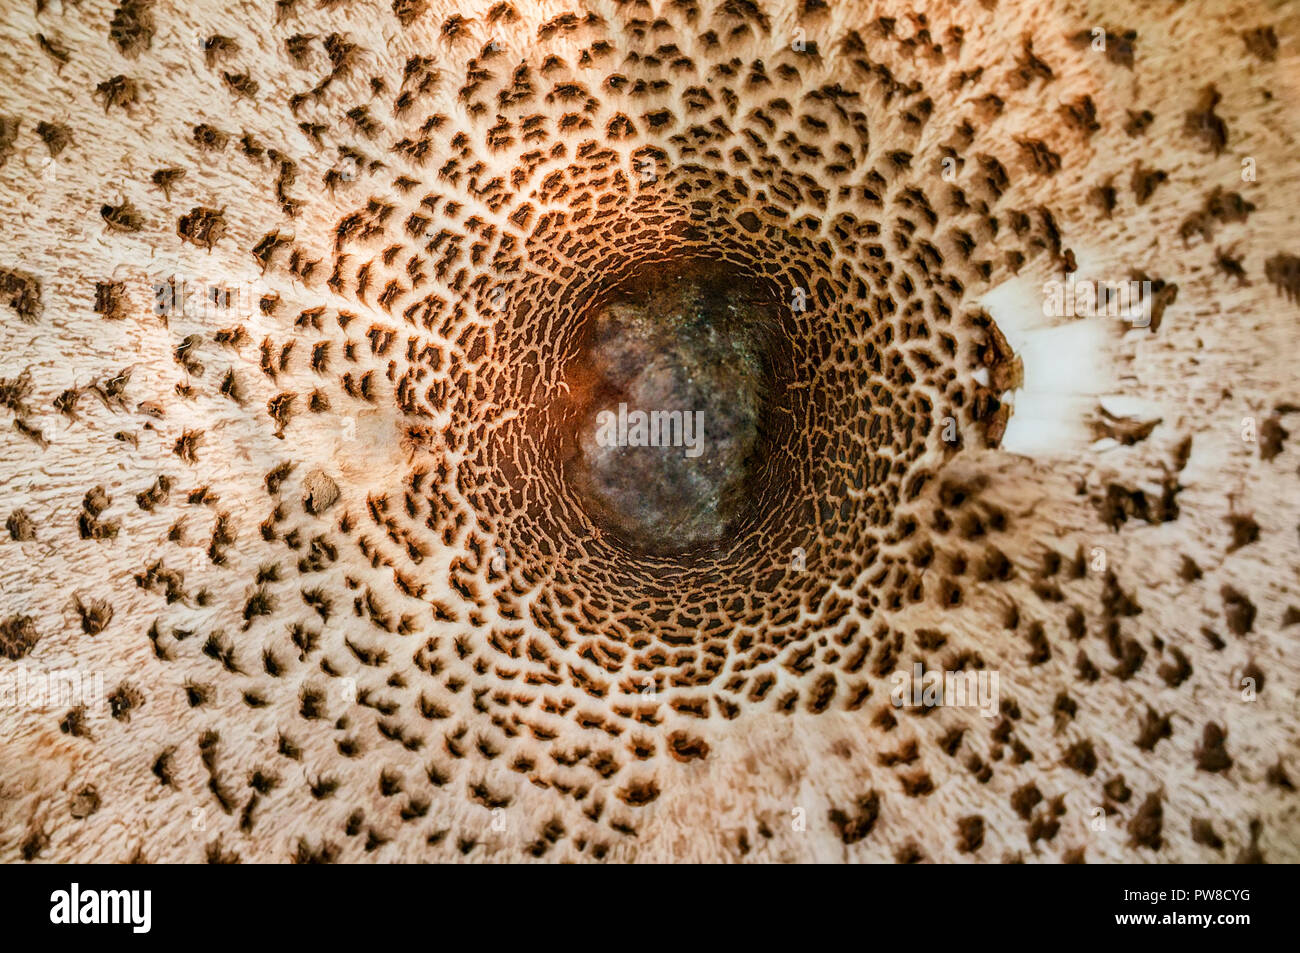 Abstract Nature Background Macro Sajor Caju Mushroom Plants The Use Of Design Ideas Texture Pattern Or Concept Natural Wallpaper Stock Photo Alamy